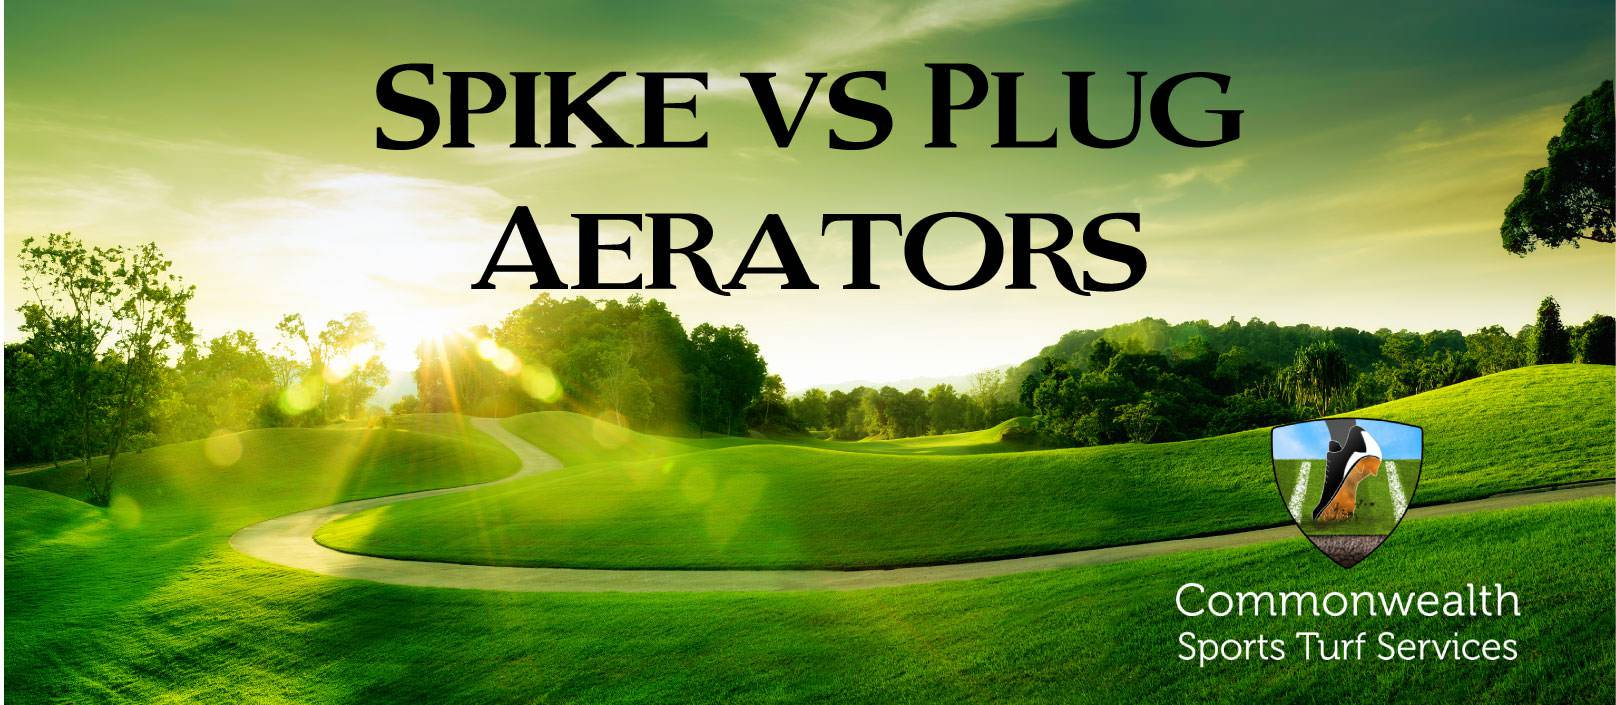 Spike Aerator Vs Plug Aerator Commonwealth Sports Turf